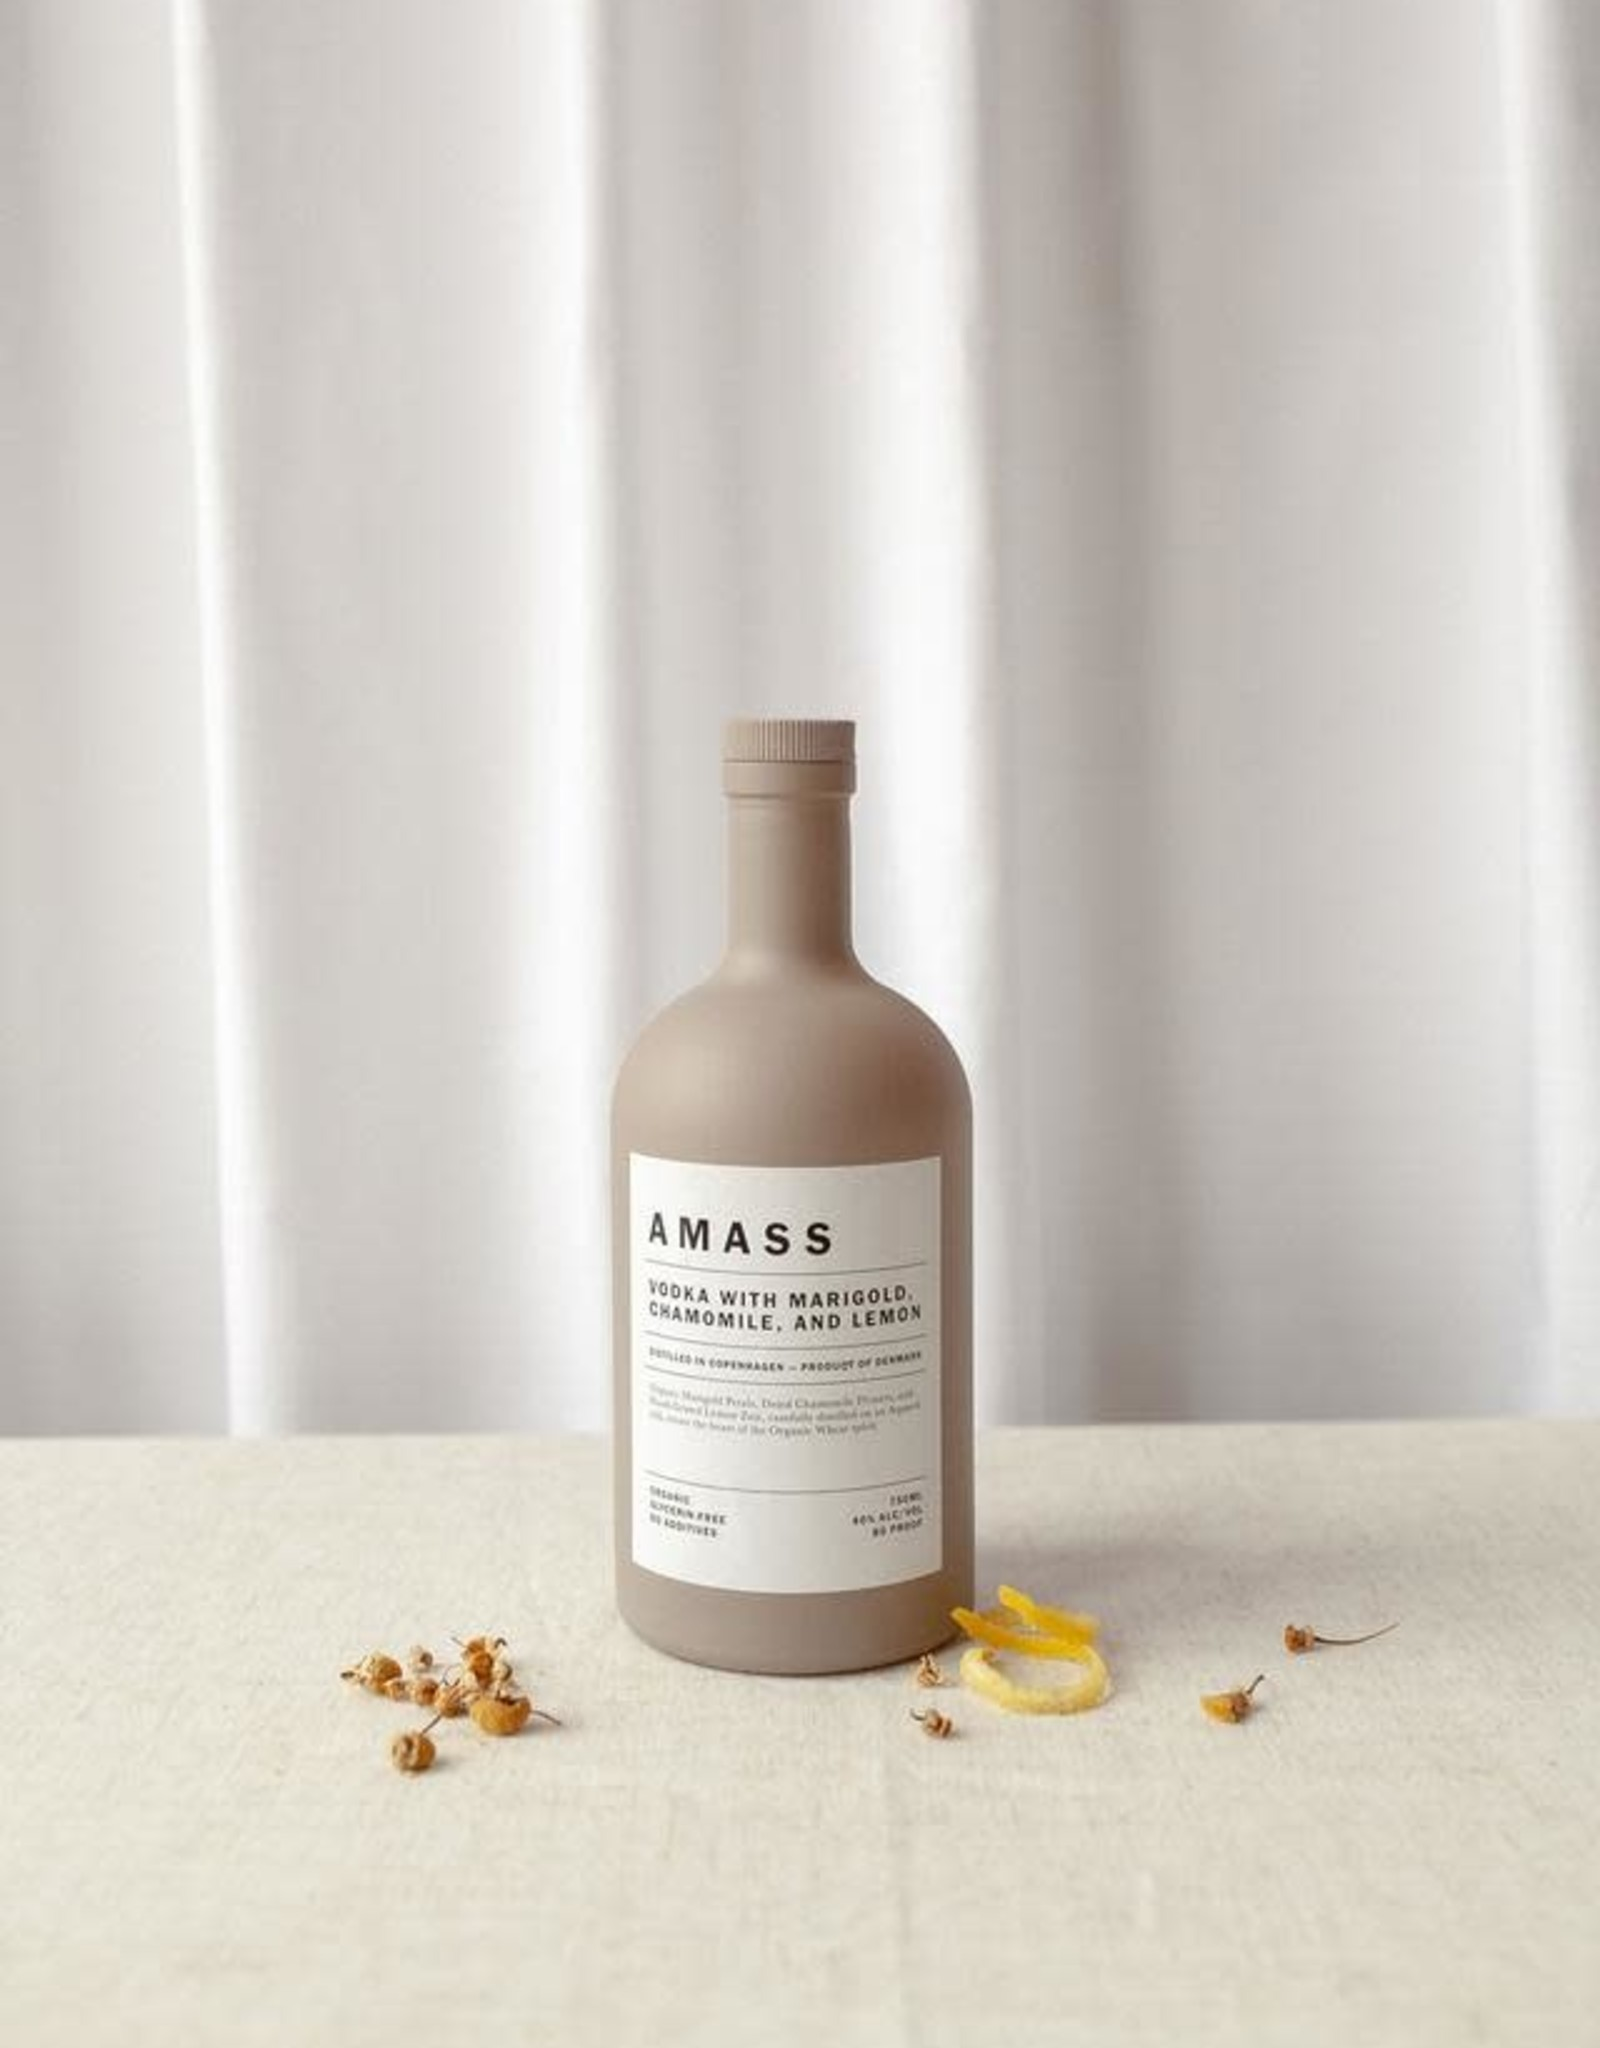 Vodka, Denmark, AMASS